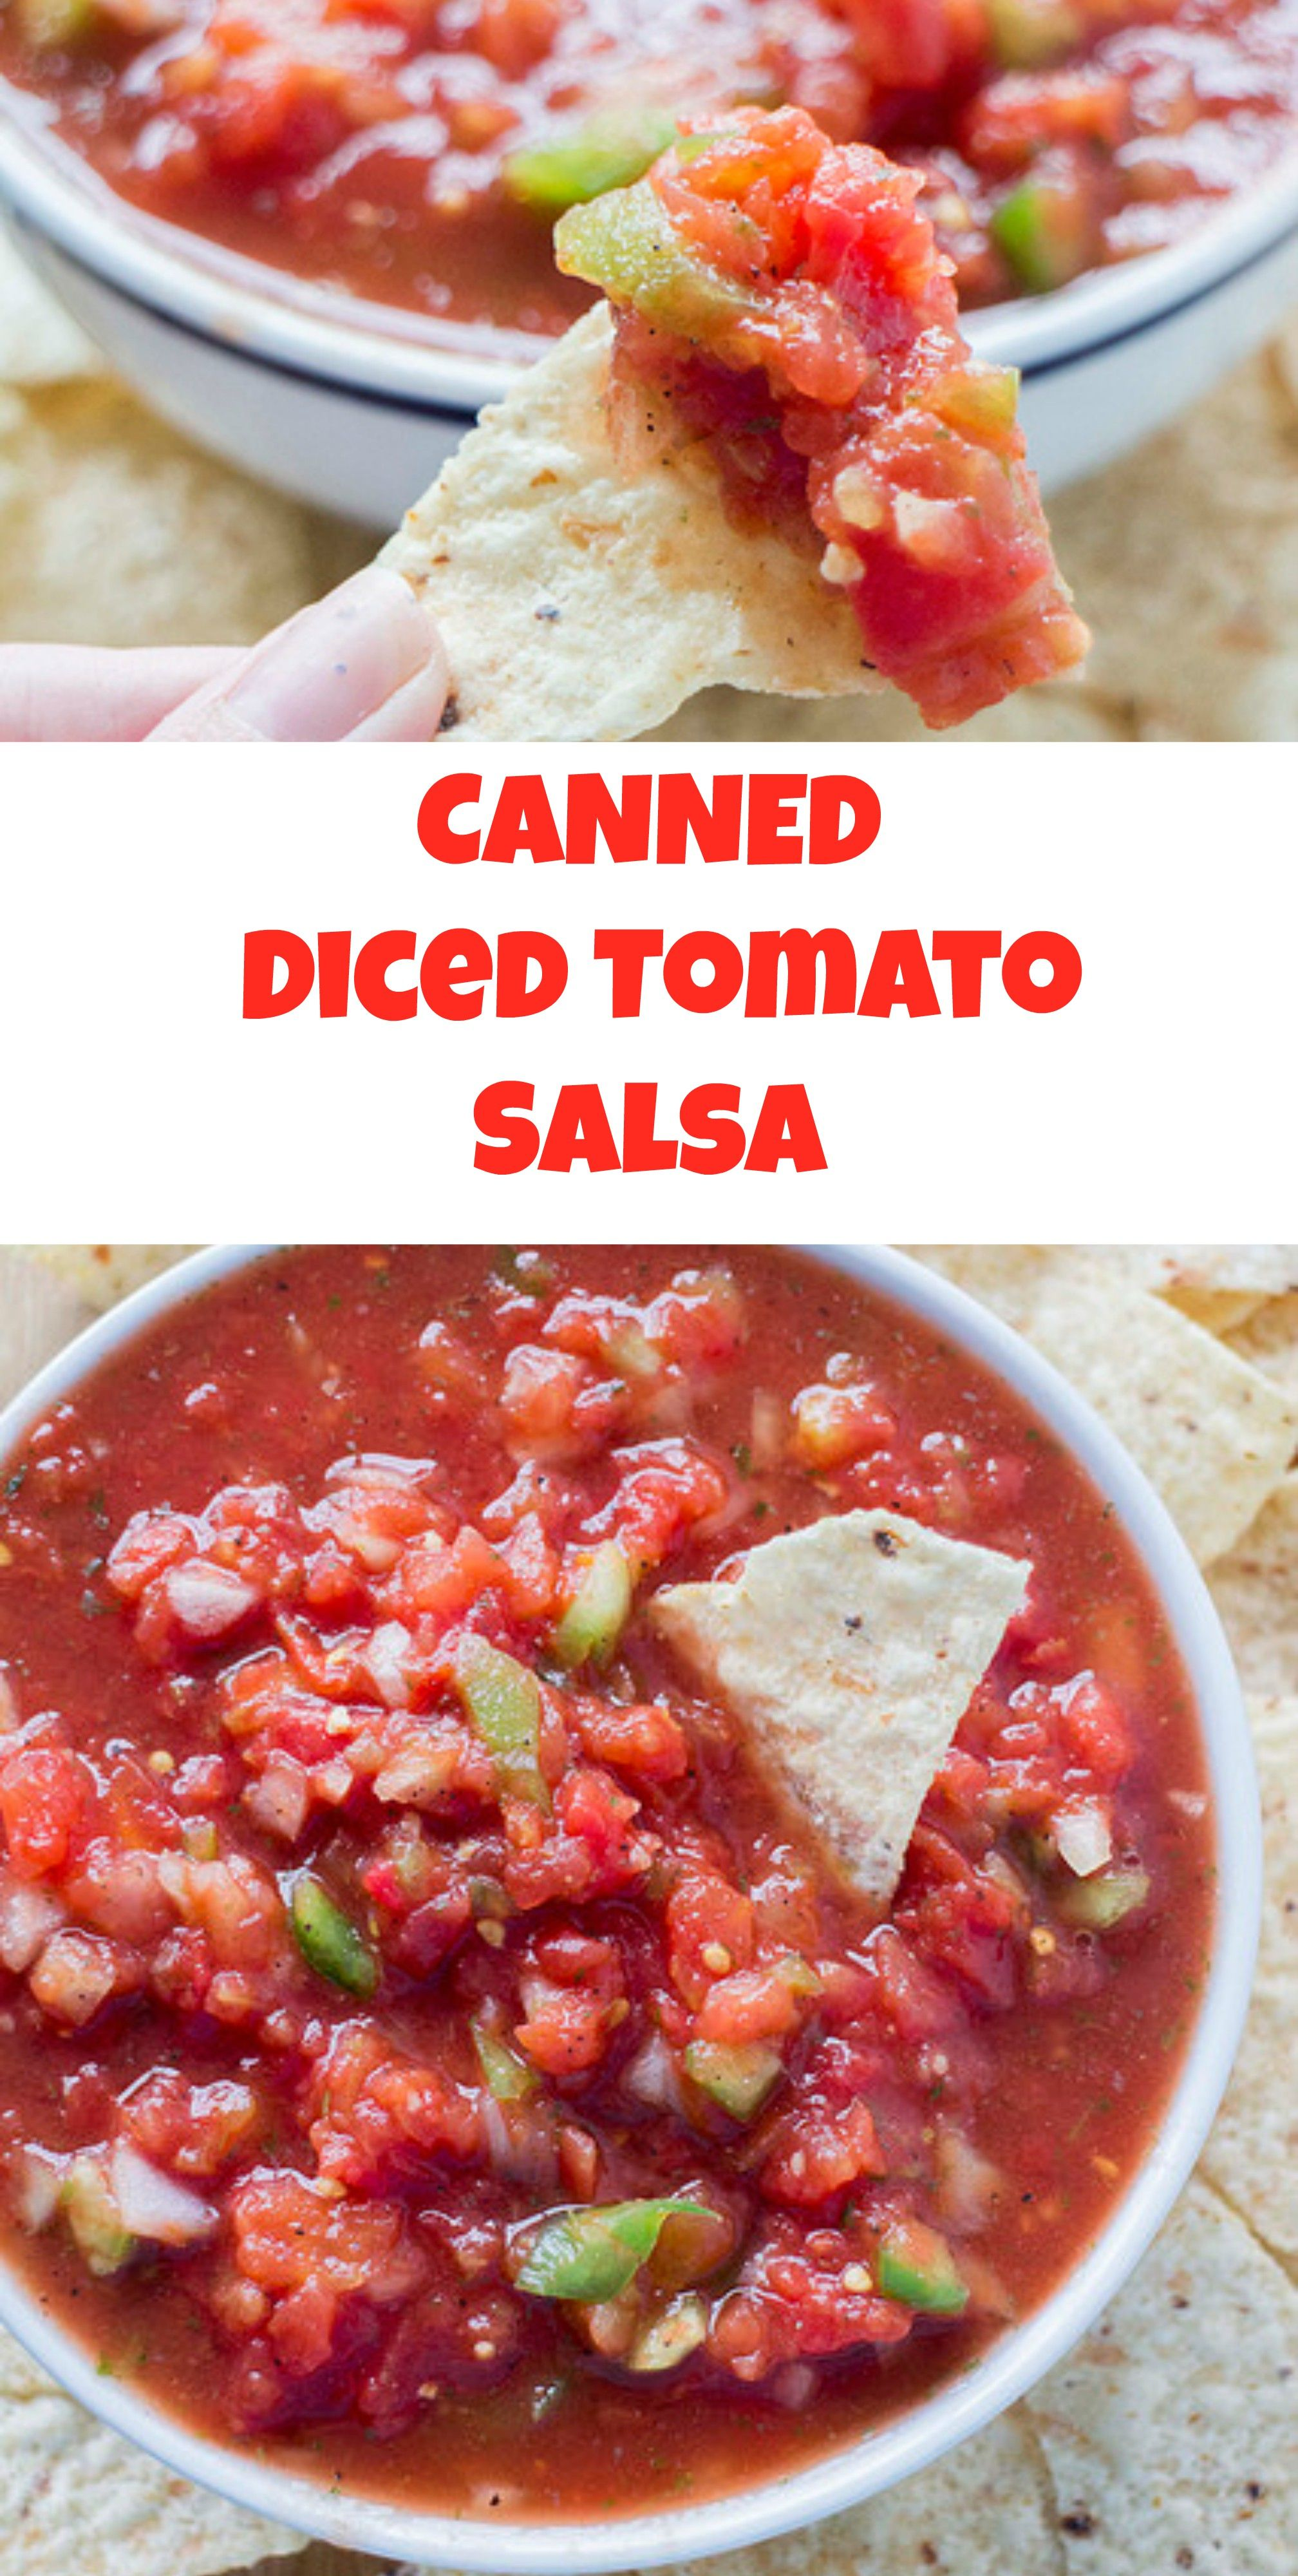 Canned Salsa Easy Recipe Made With Canned Tomatoes Recipe Canned Tomato Recipes Salsa With Canned Tomatoes Recipes With Diced Tomatoes